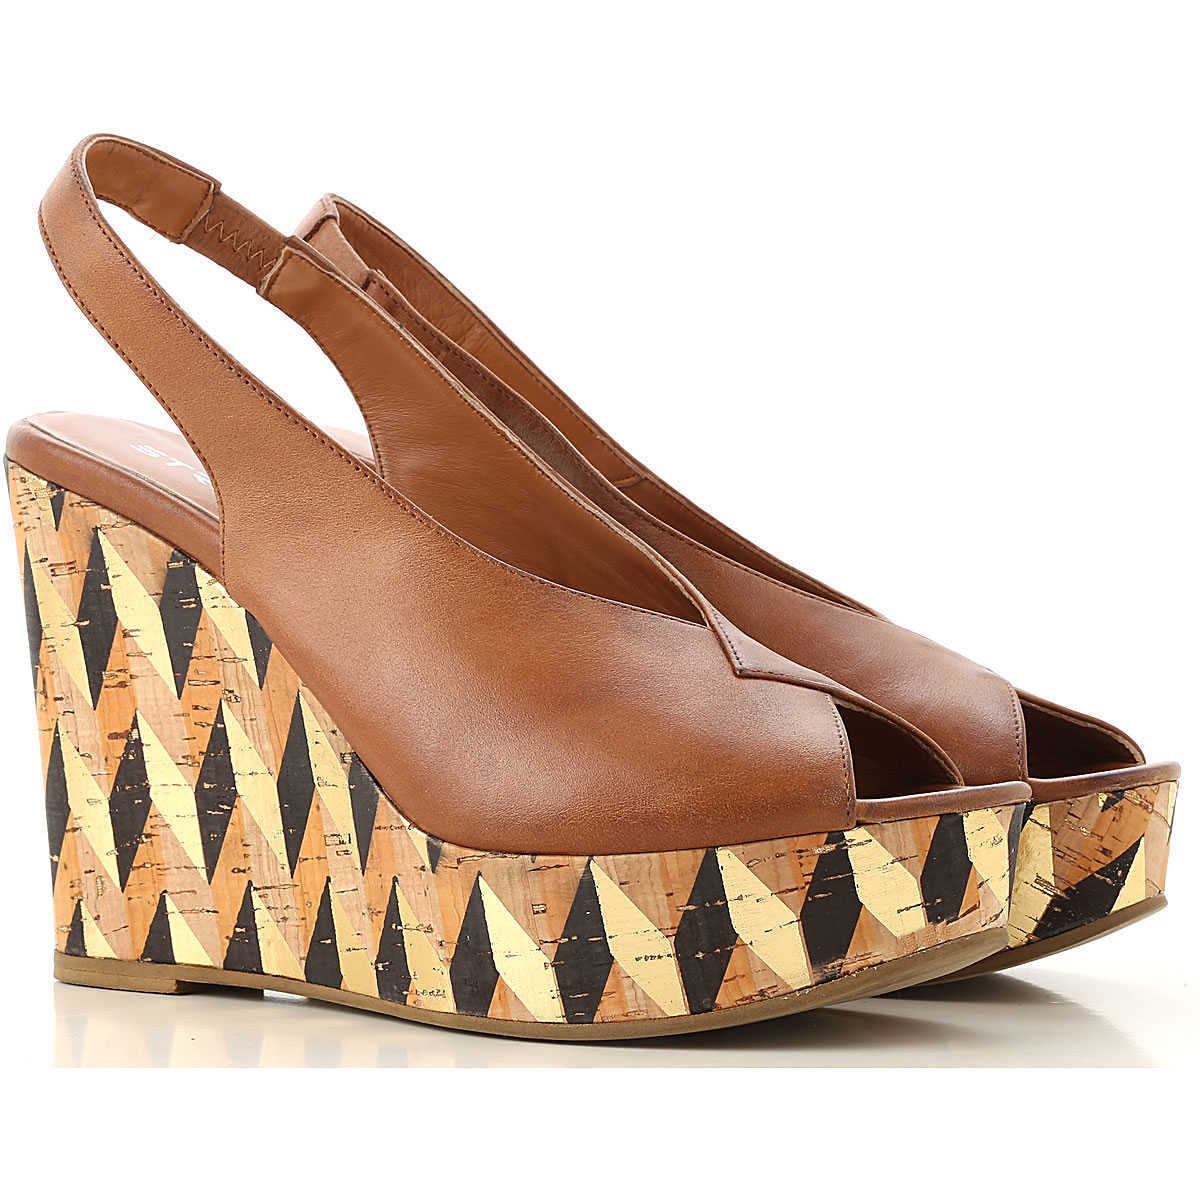 Strategia Wedges for Women On Sale Leather Brown DK - GOOFASH - Womens HOUSE SHOES